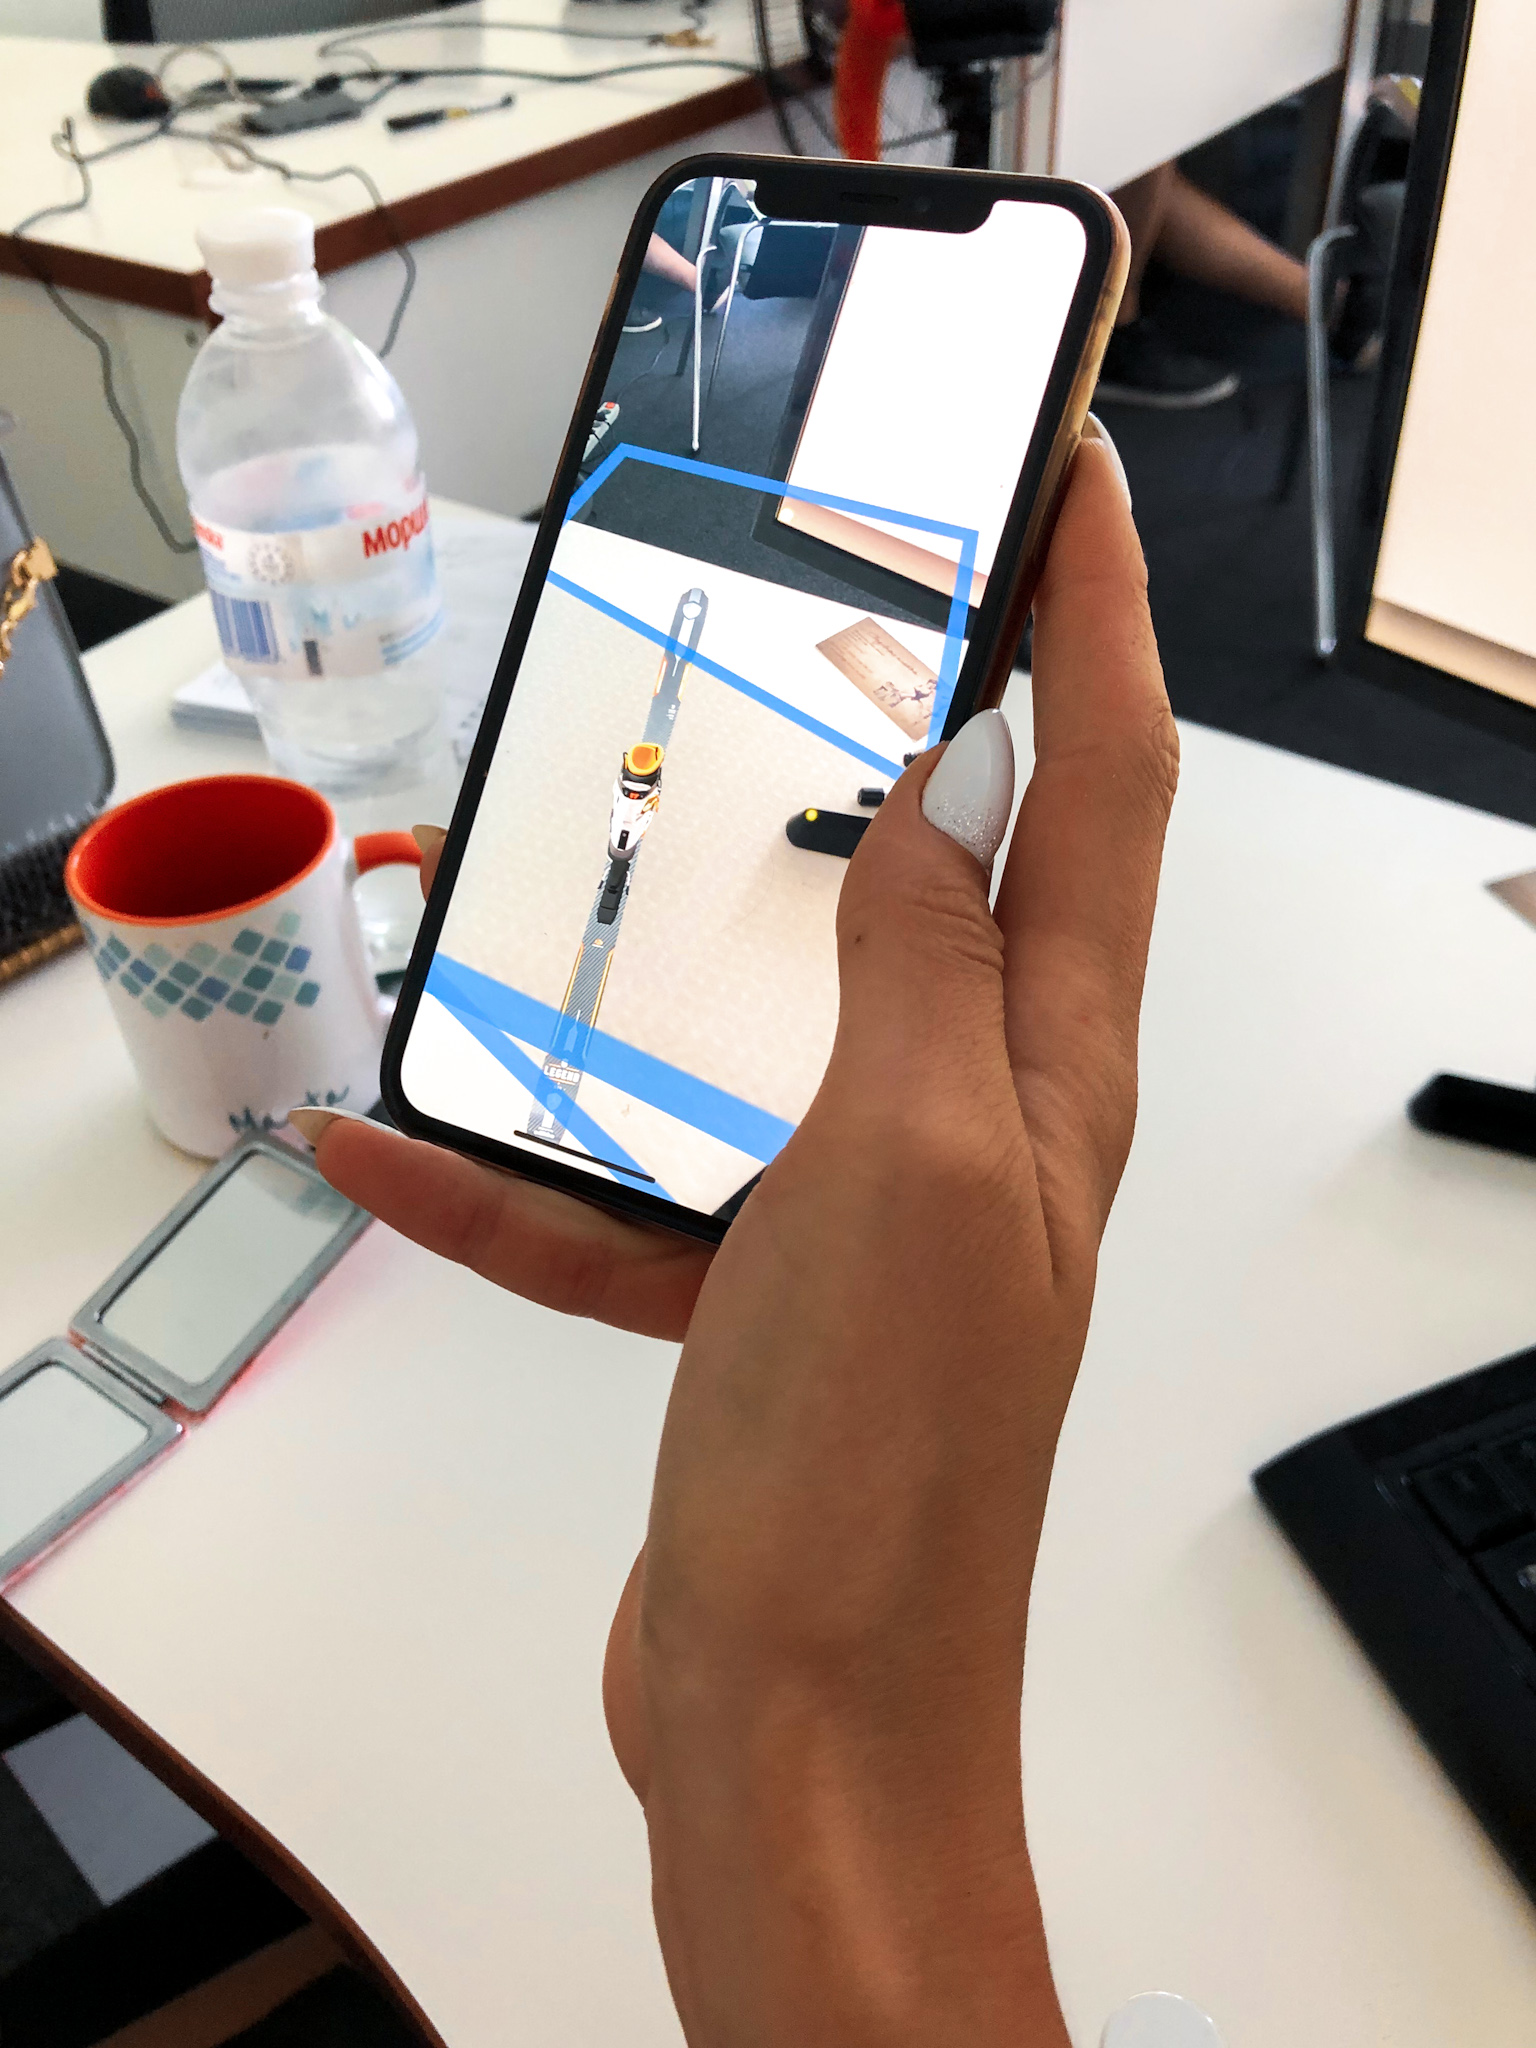 AR-Augmented Reality